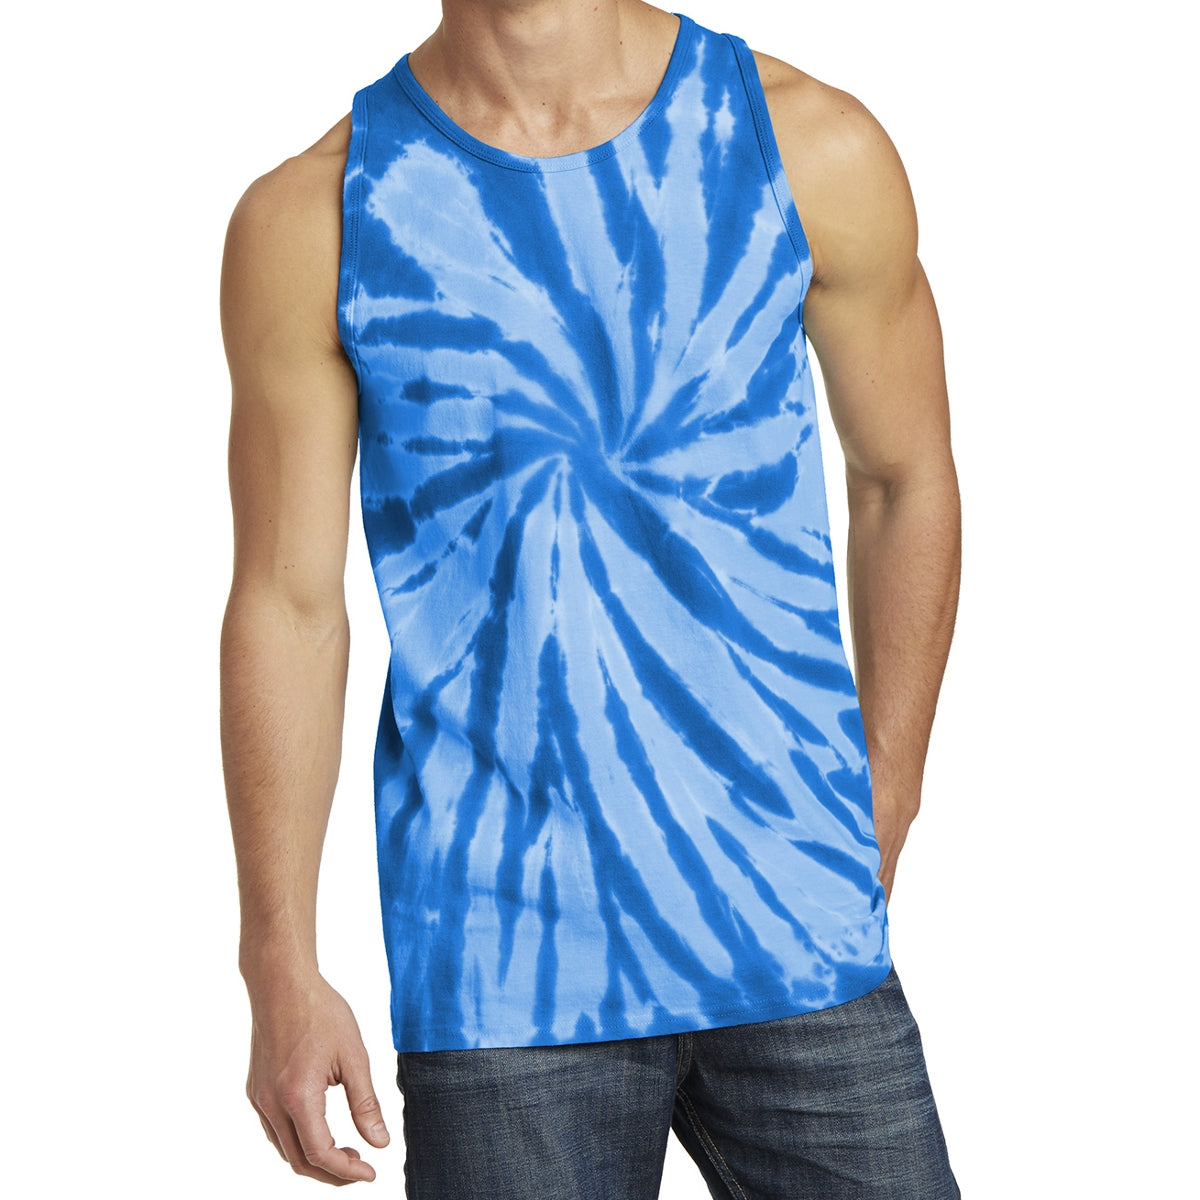 Men's Tie-Dye Tank Top - Royal